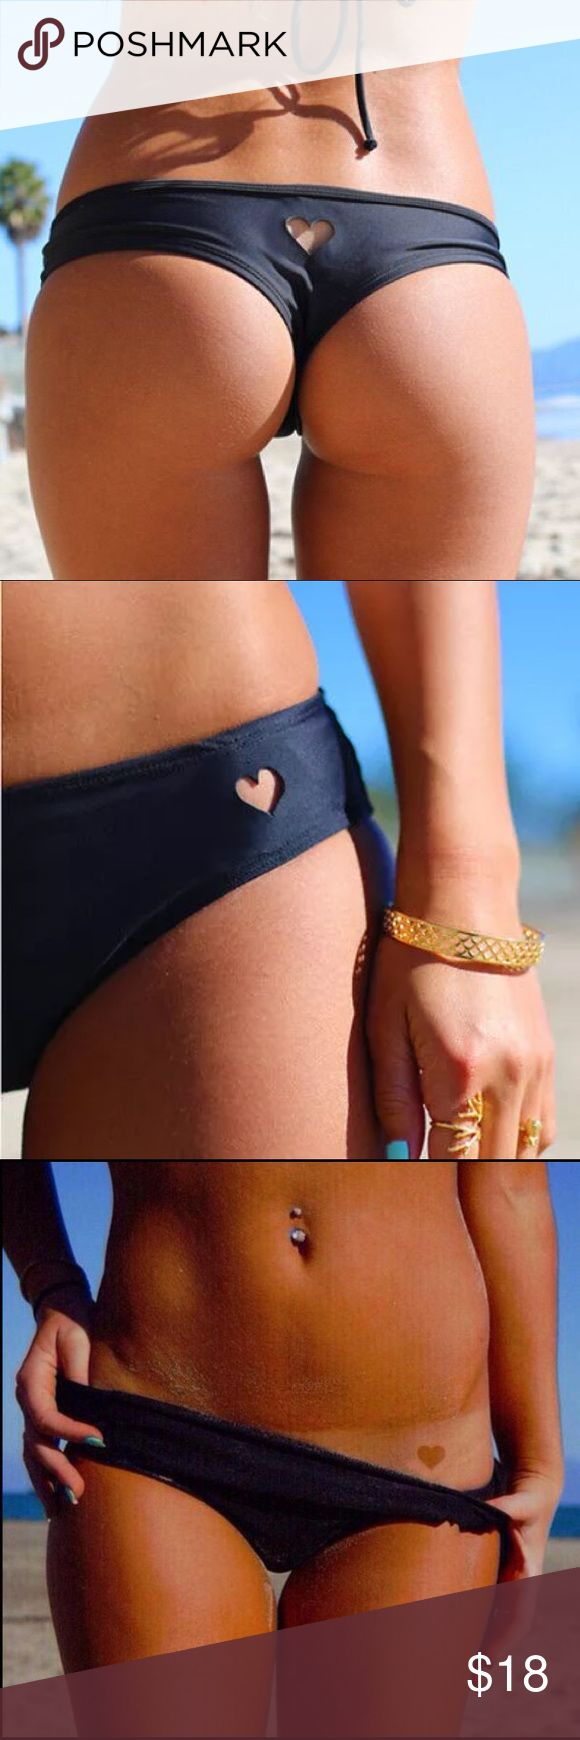 "Cheeky Brazilian Heart Bikini Bottoms Sexy & cute Brazilian cheeky bikini bottoms in black. Features one cut-out heart pattern on the front side, & one cut-out heart pattern on the back in the middle. Protective pantyliner intact. **These run very small!! I definitely recommend sizing up!!** Hips: S- 24""-28"" M- 25""-29"" L- 27""-31"" XL- 28""-33"" Don't see your size or favorite color but still want one?! Let me know!! Swim Bikinis"